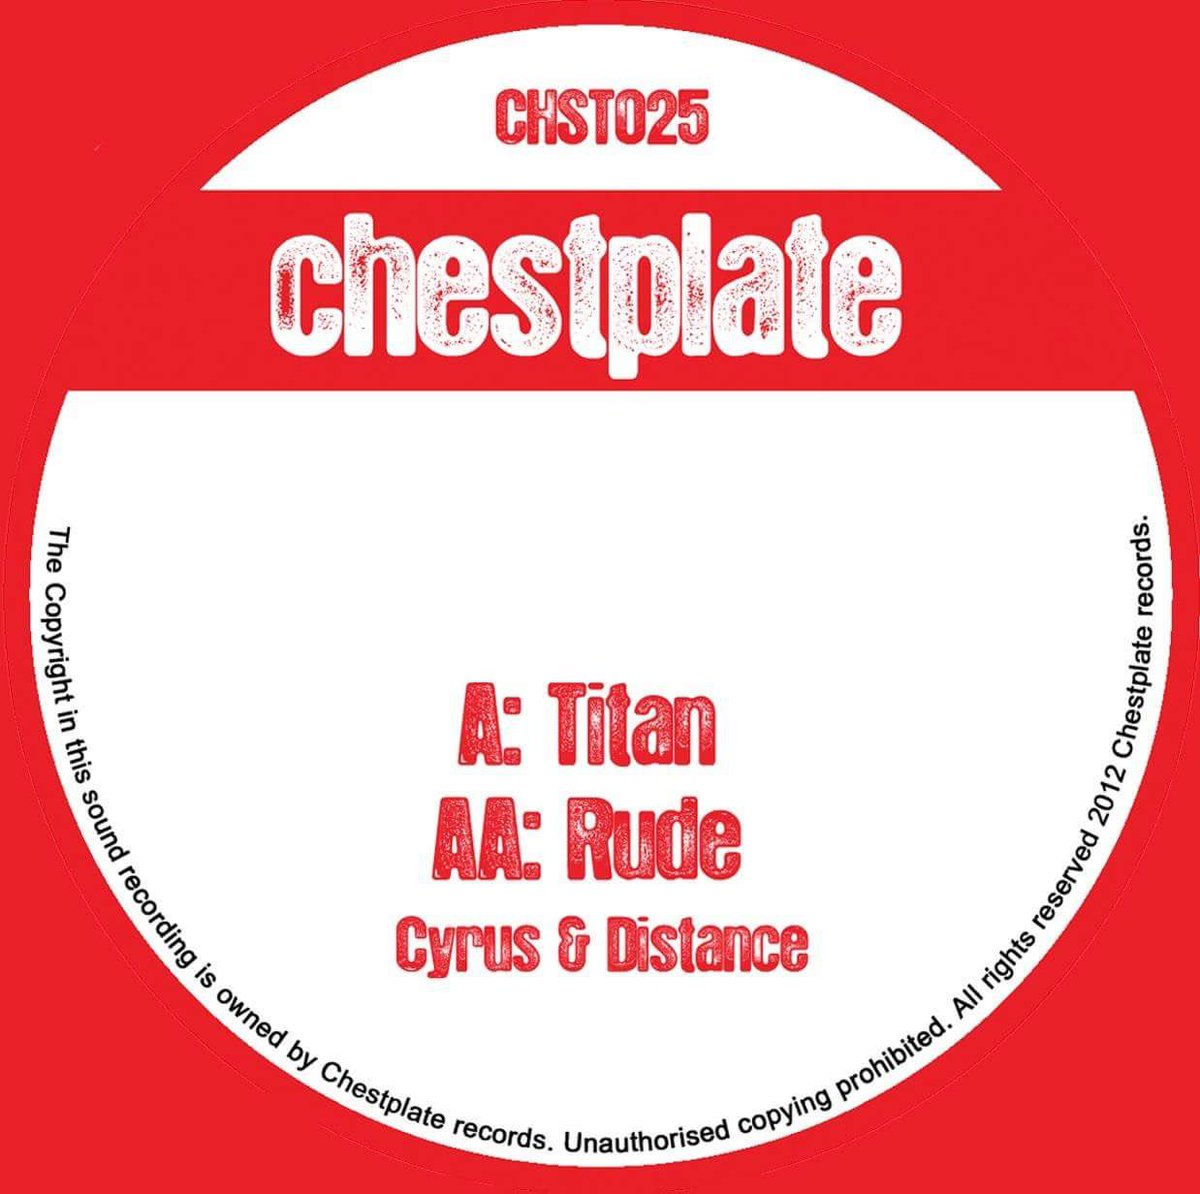 3 years old to the day this release @Distance_dj https://t.co/3wp7YS85qY